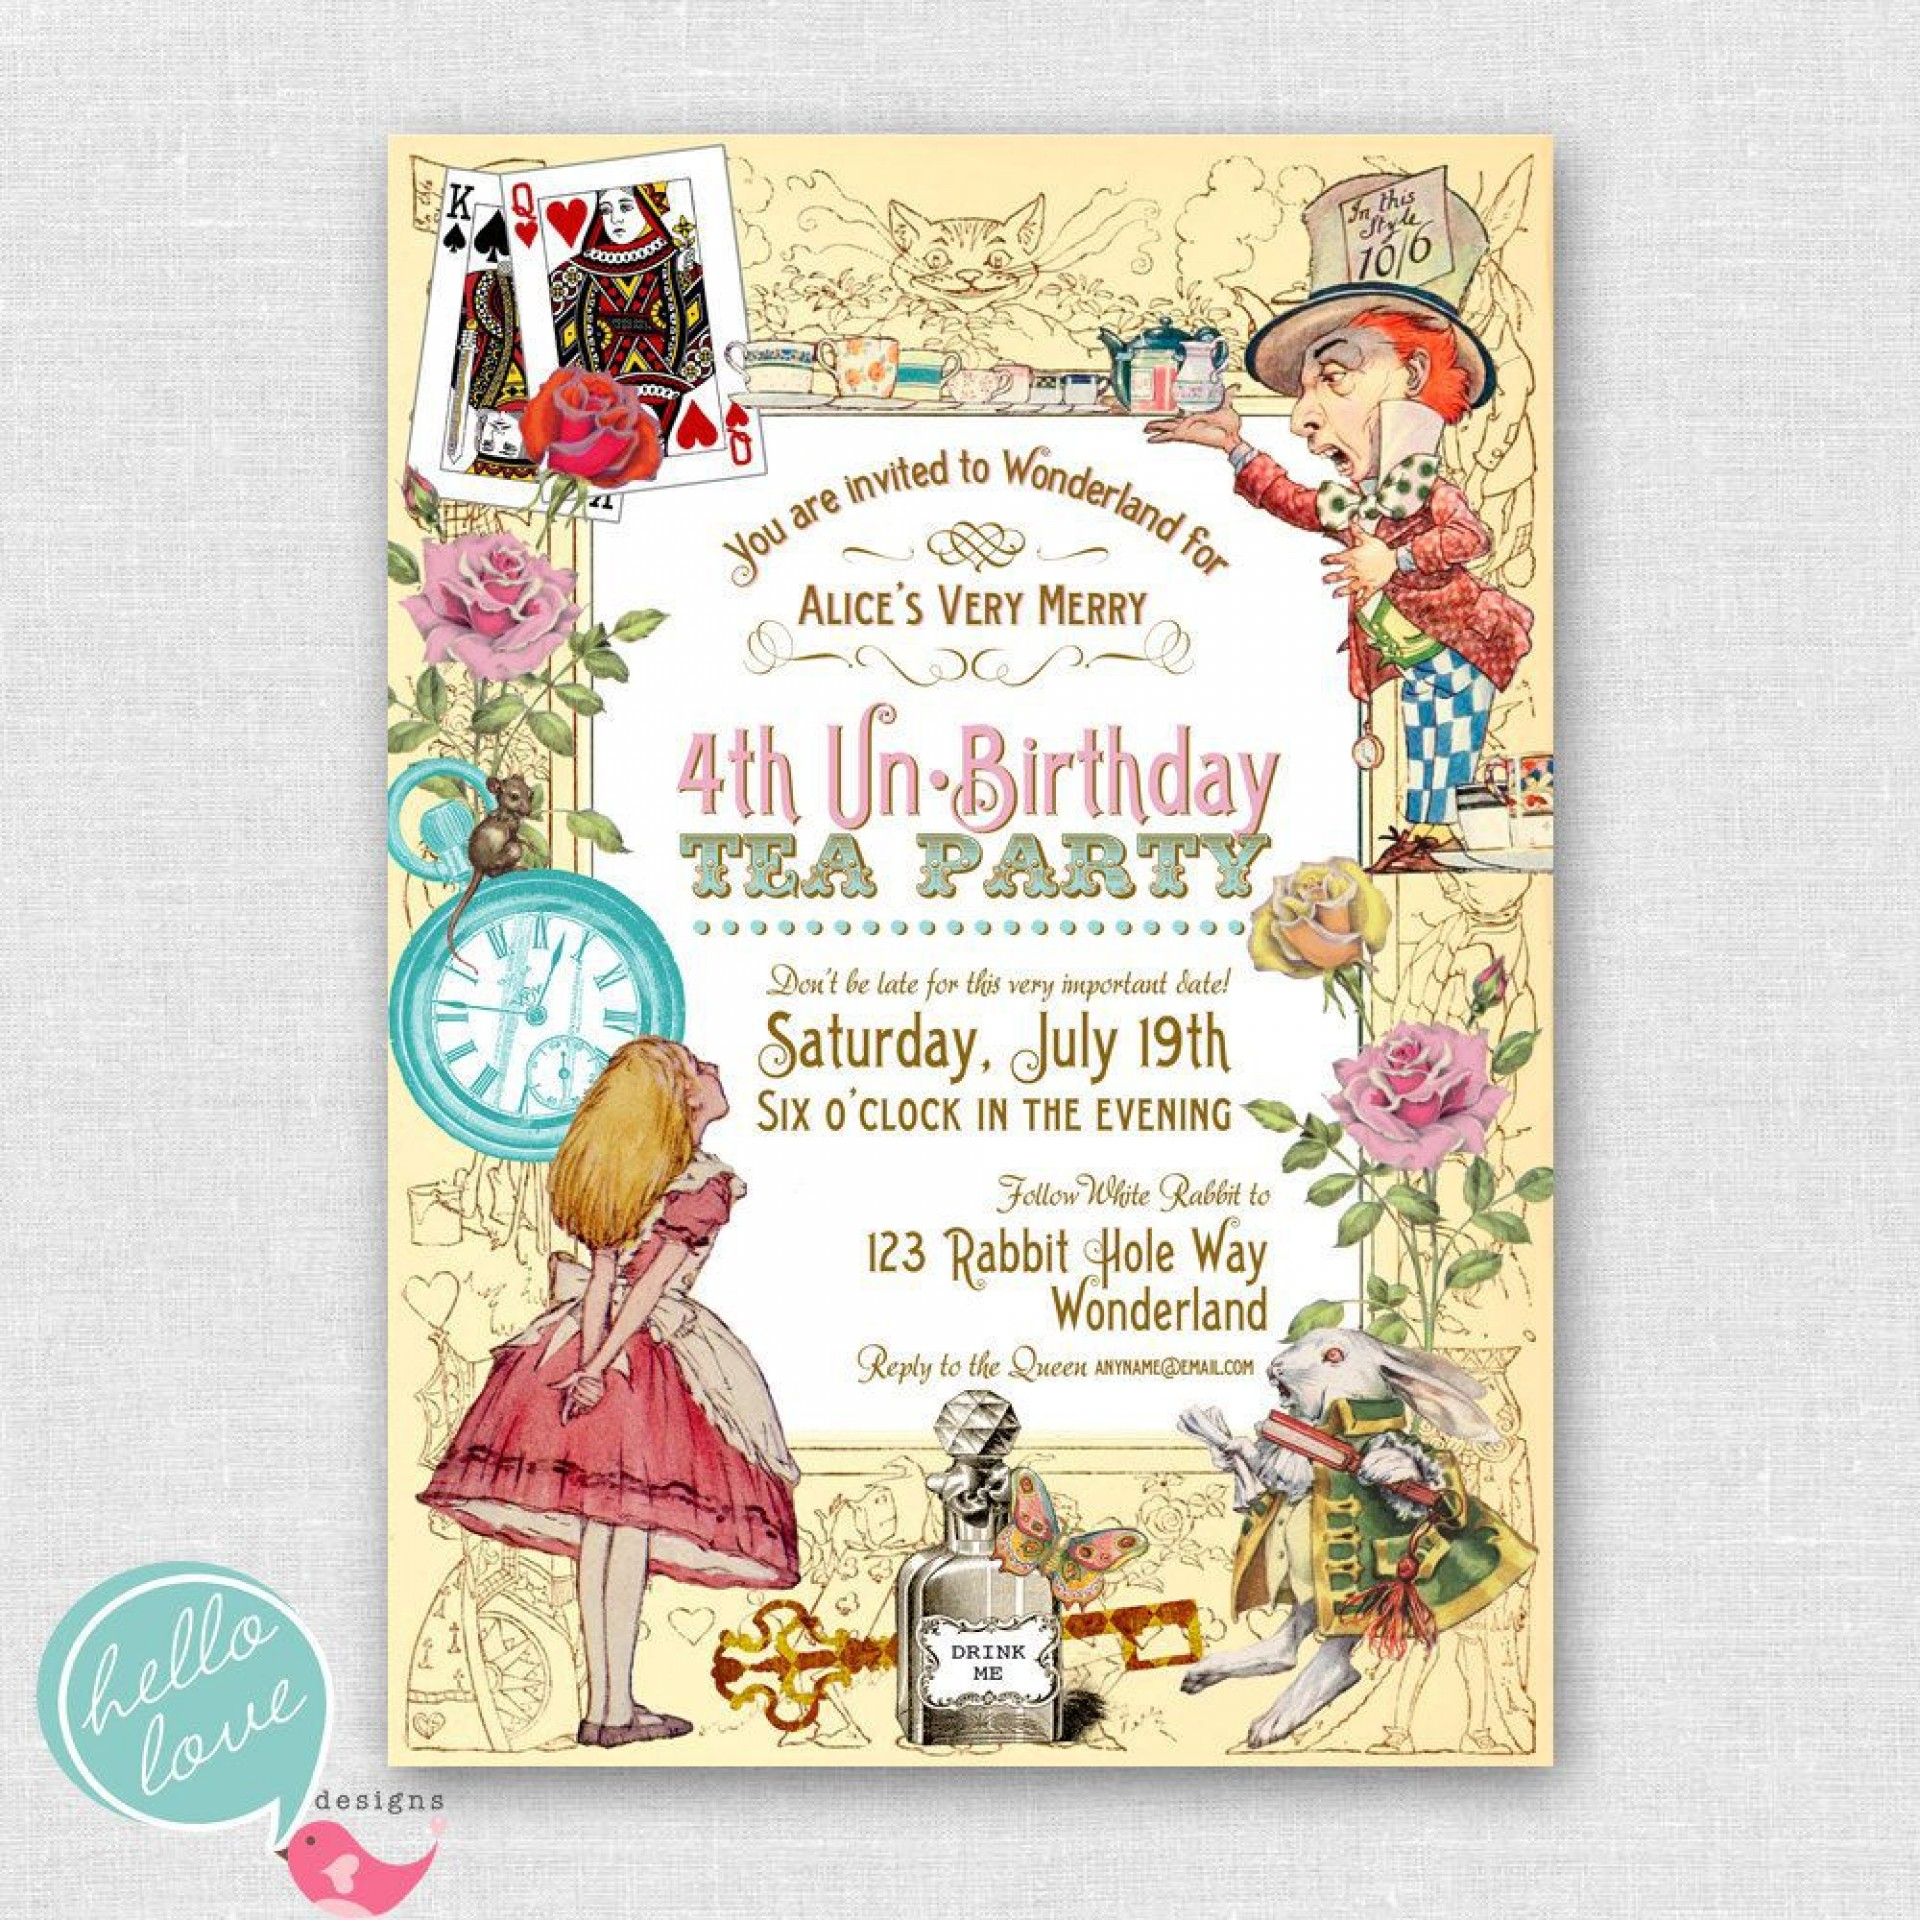 005 Stunning Alice In Wonderland Invite Template Highest Clarity  Party Invitation Free1920